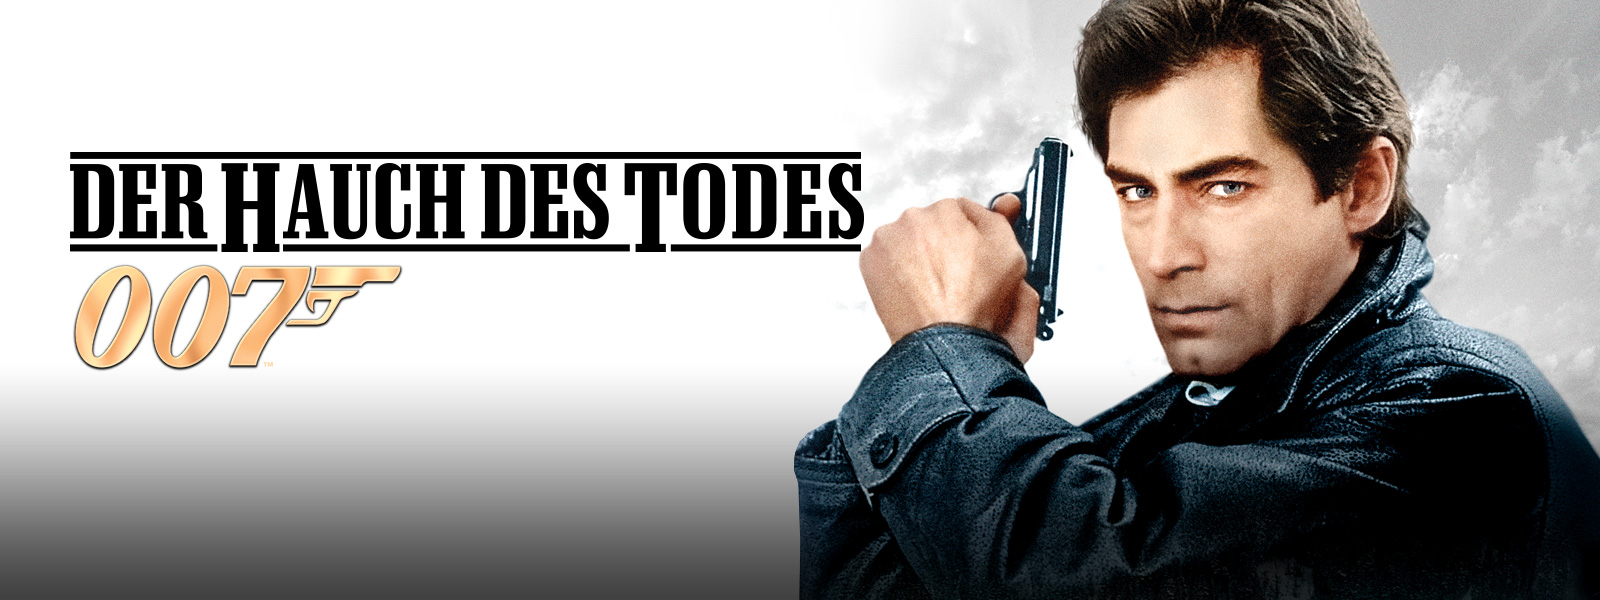 James Bond – Der Hauch des Todes